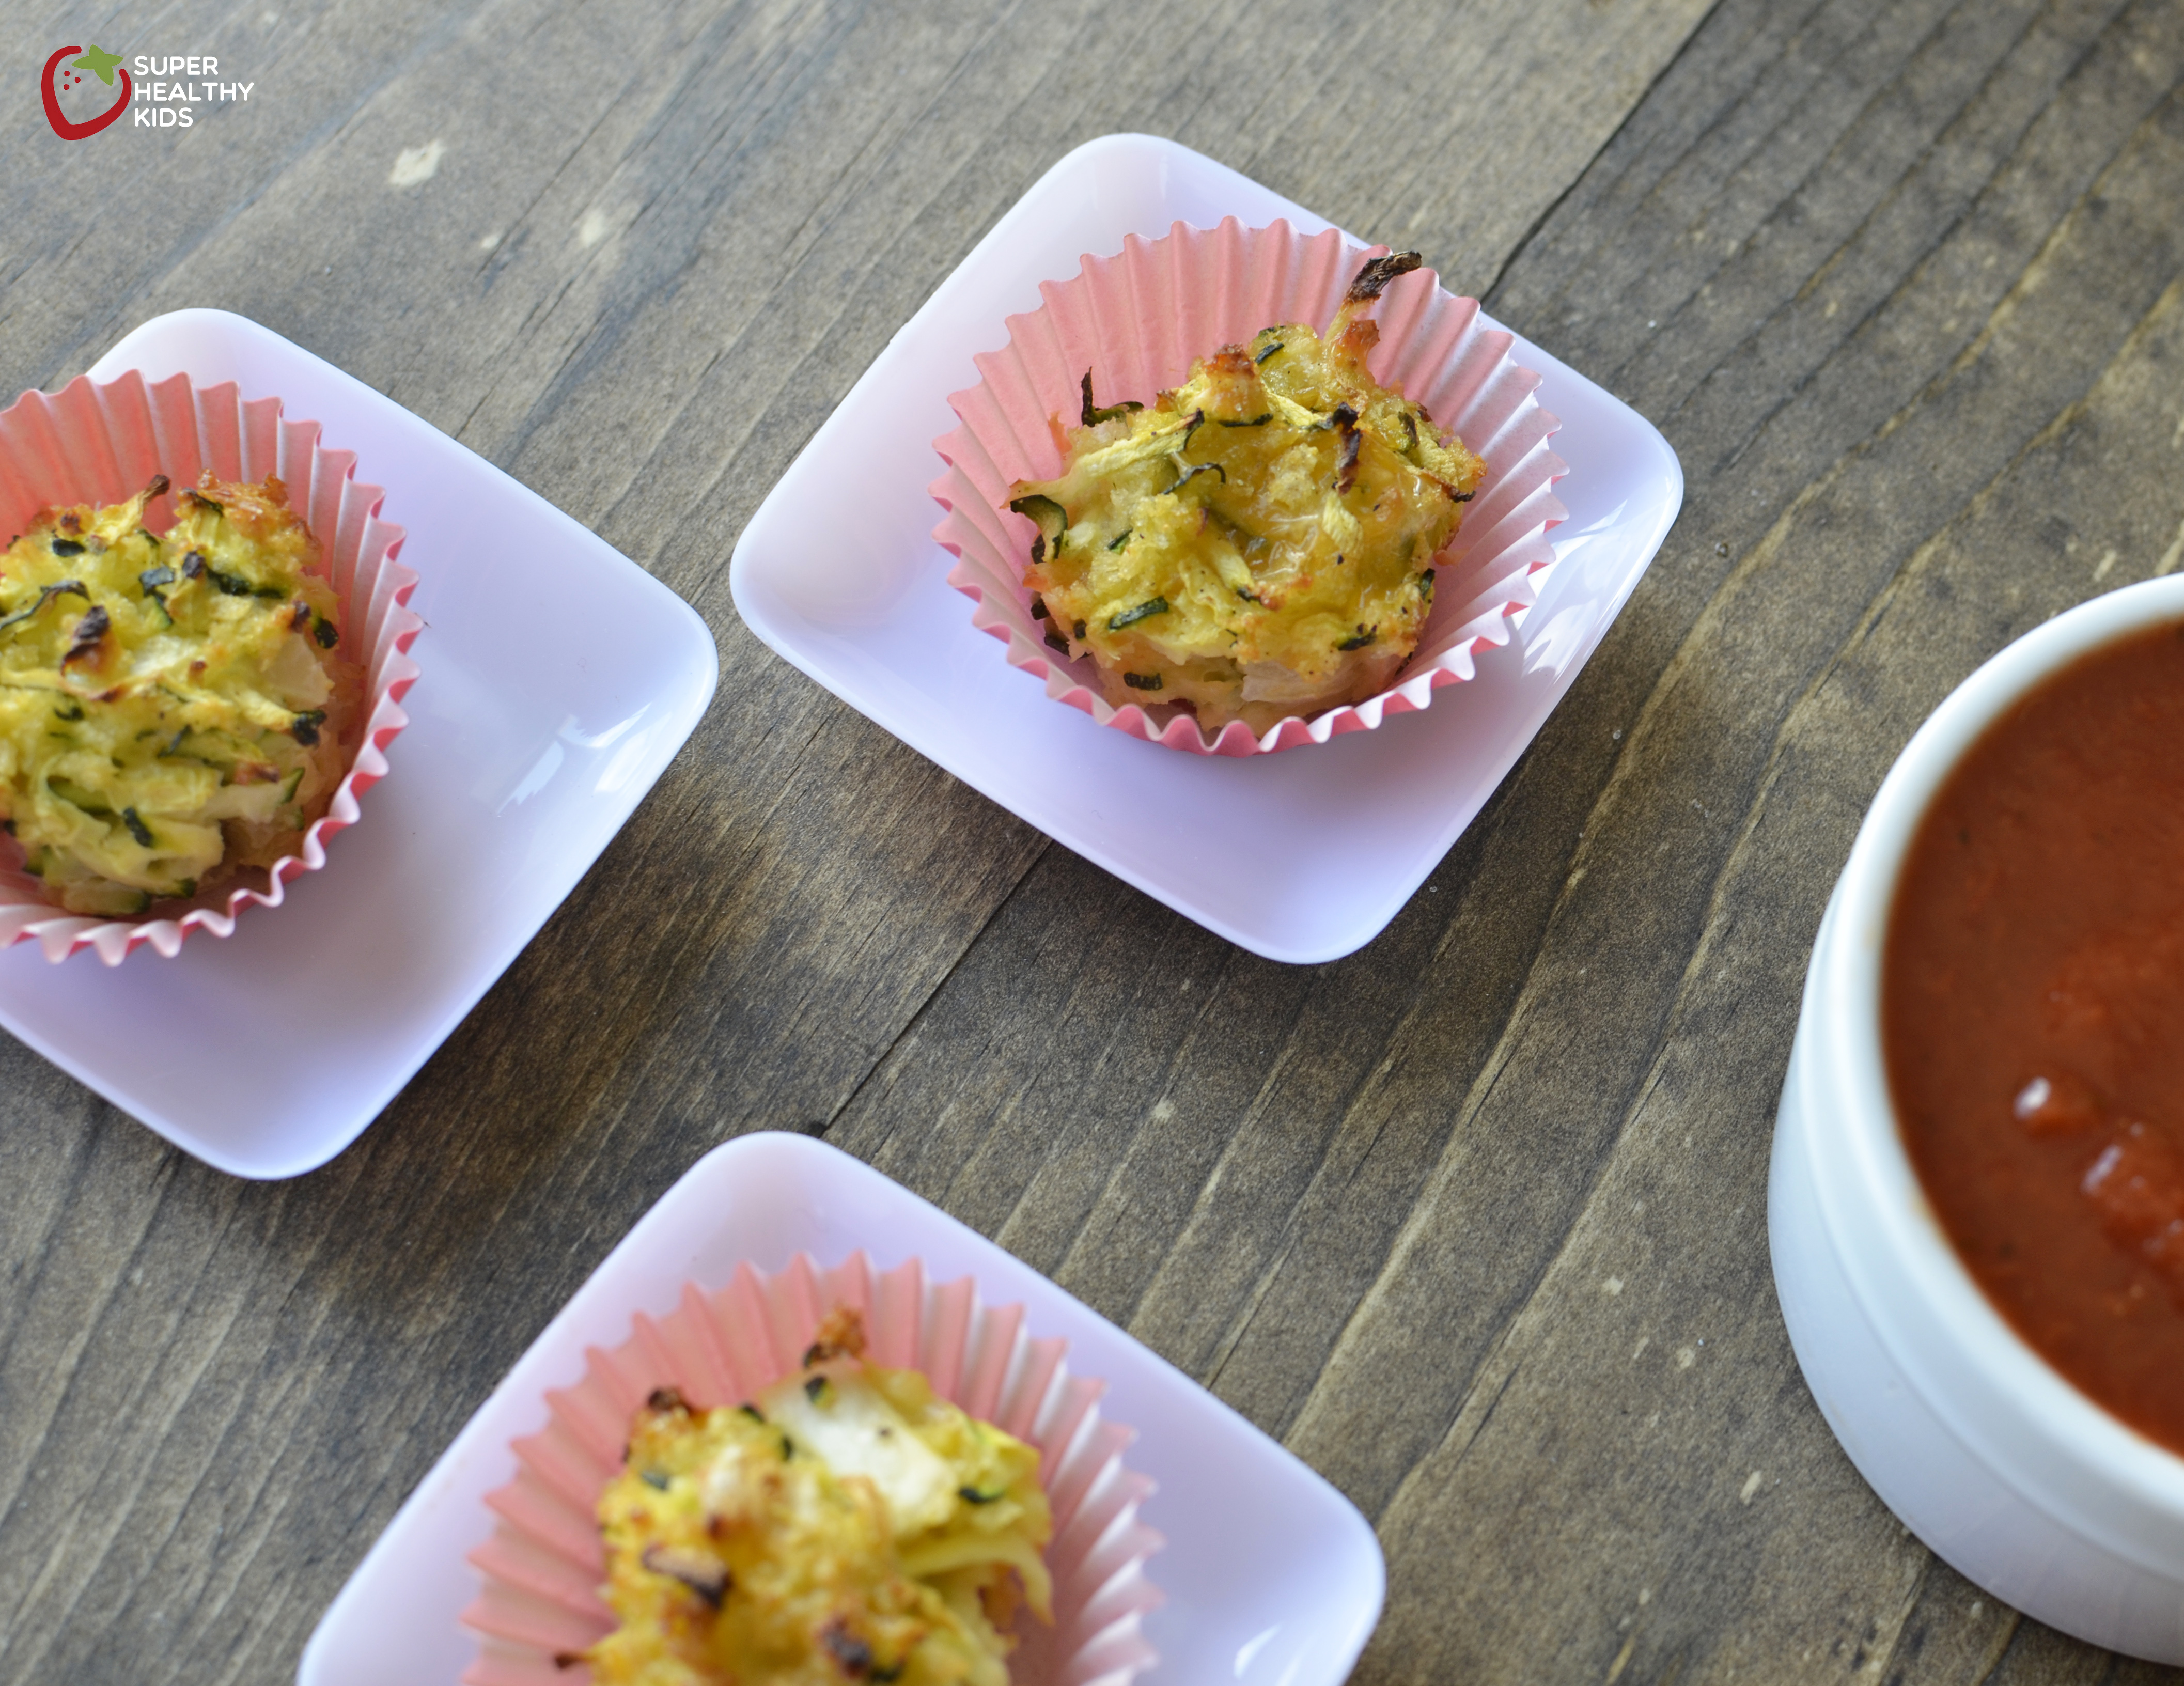 Baked Zucchini Bite Recipe. How to turn zucchini into a cheesy snack ...